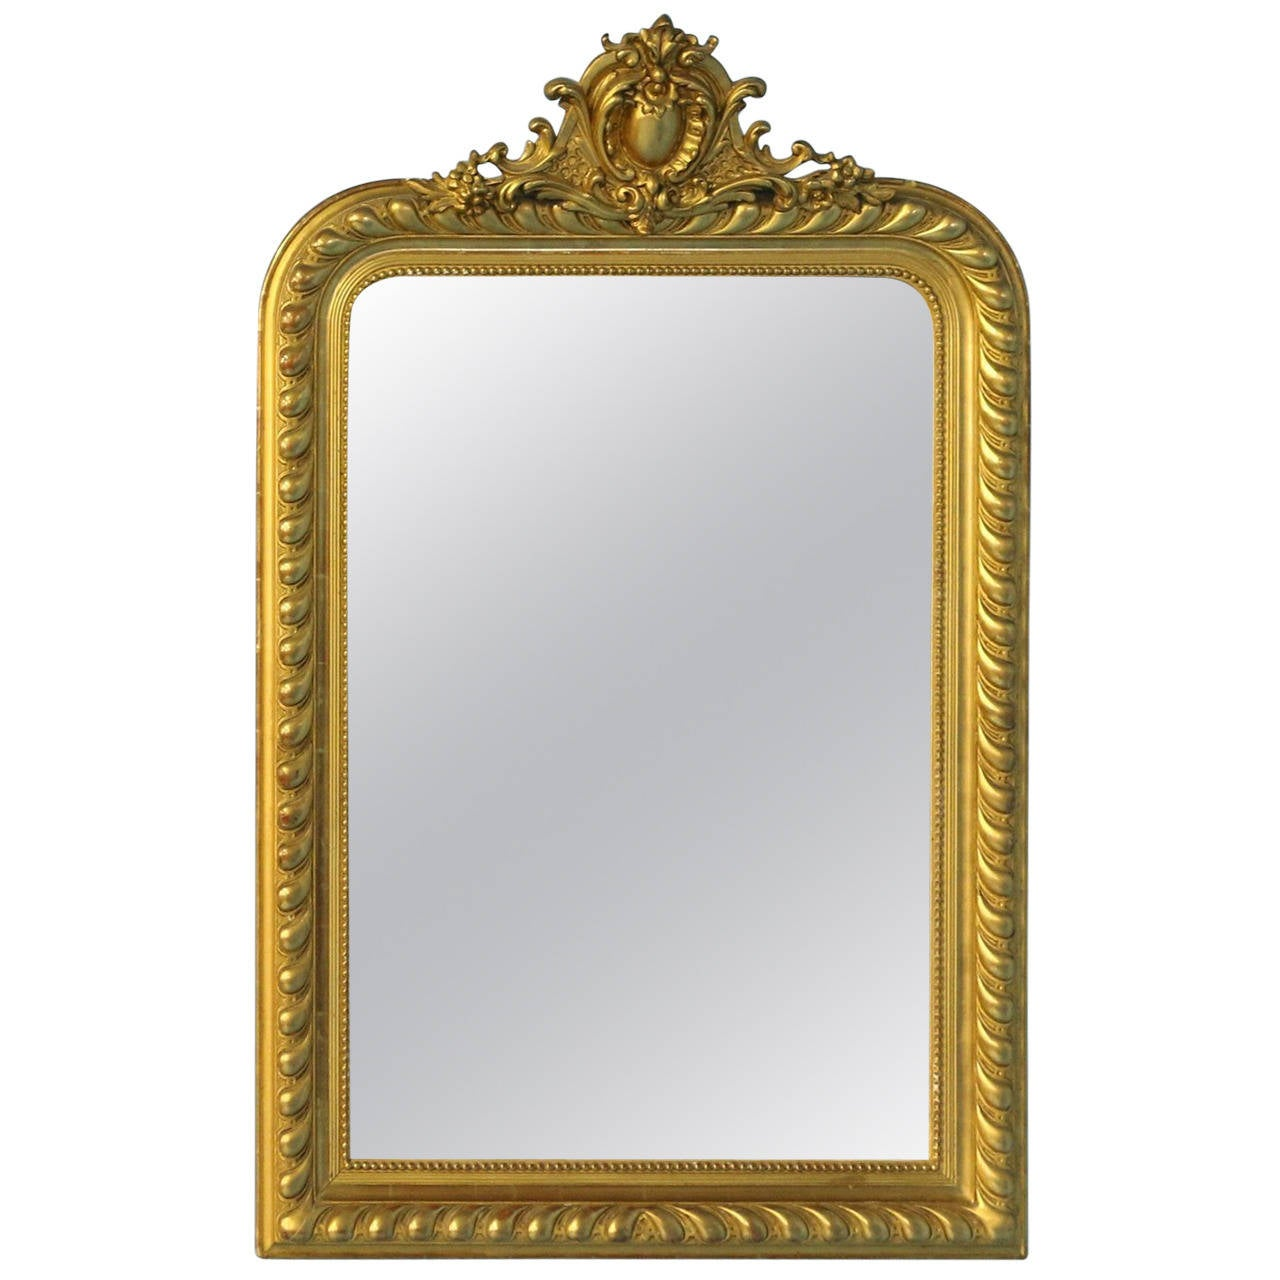 Antique french gold gilt mirror circa 1860 80 at 1stdibs for French mirror